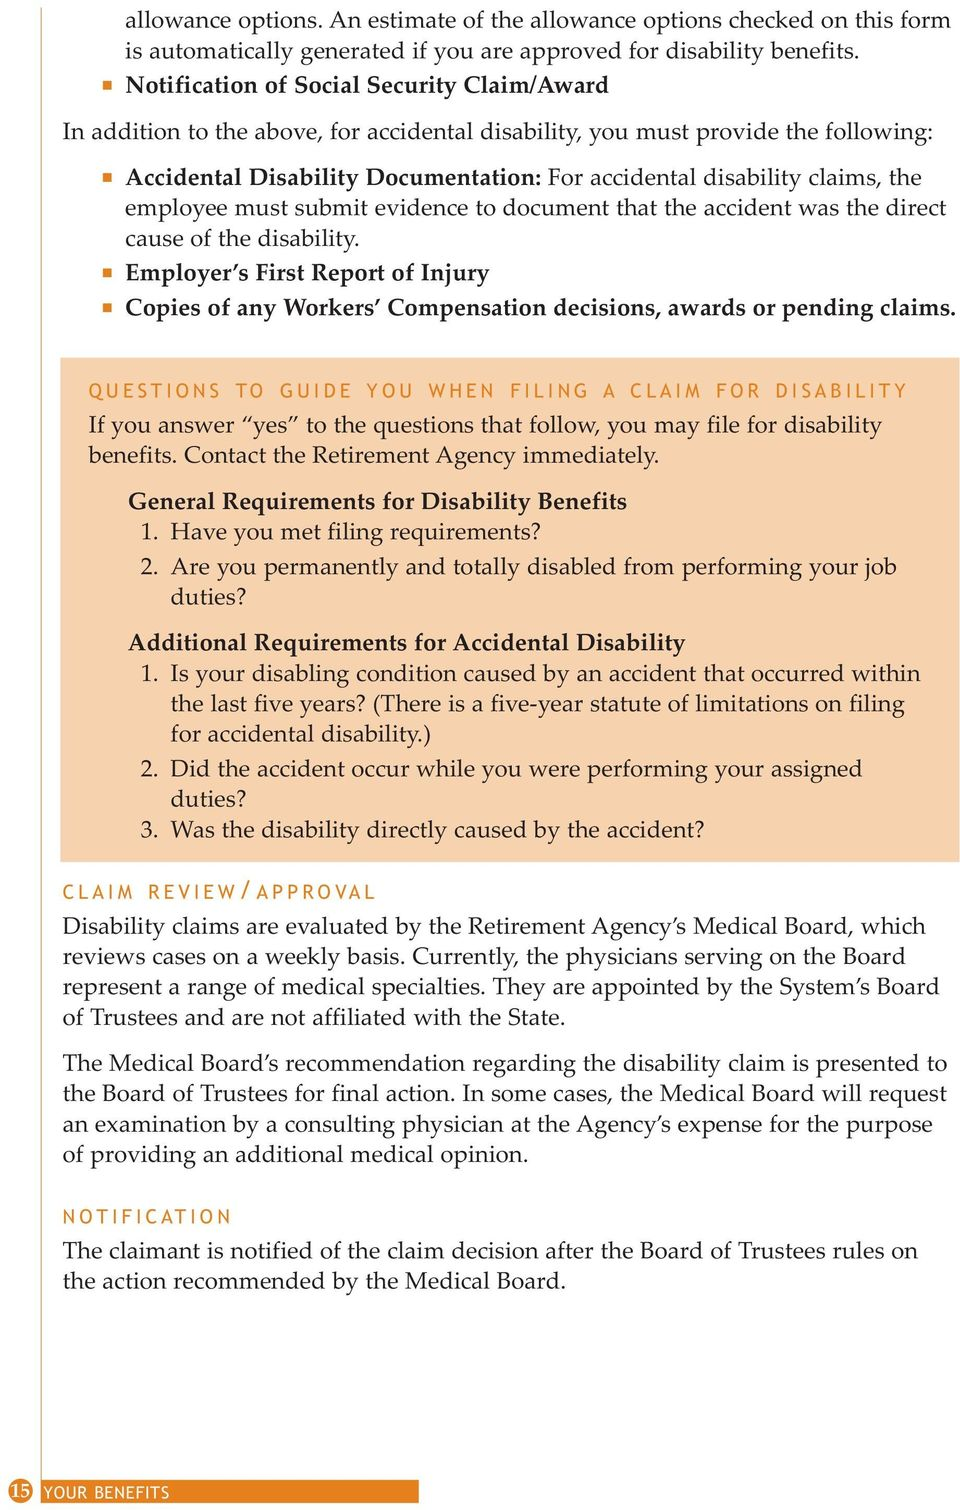 employee must submit evidece to documet that the accidet was the direct cause of the disability. Employer s First Report of Ijury Copies of ay Workers Compesatio decisios, awards or pedig claims.